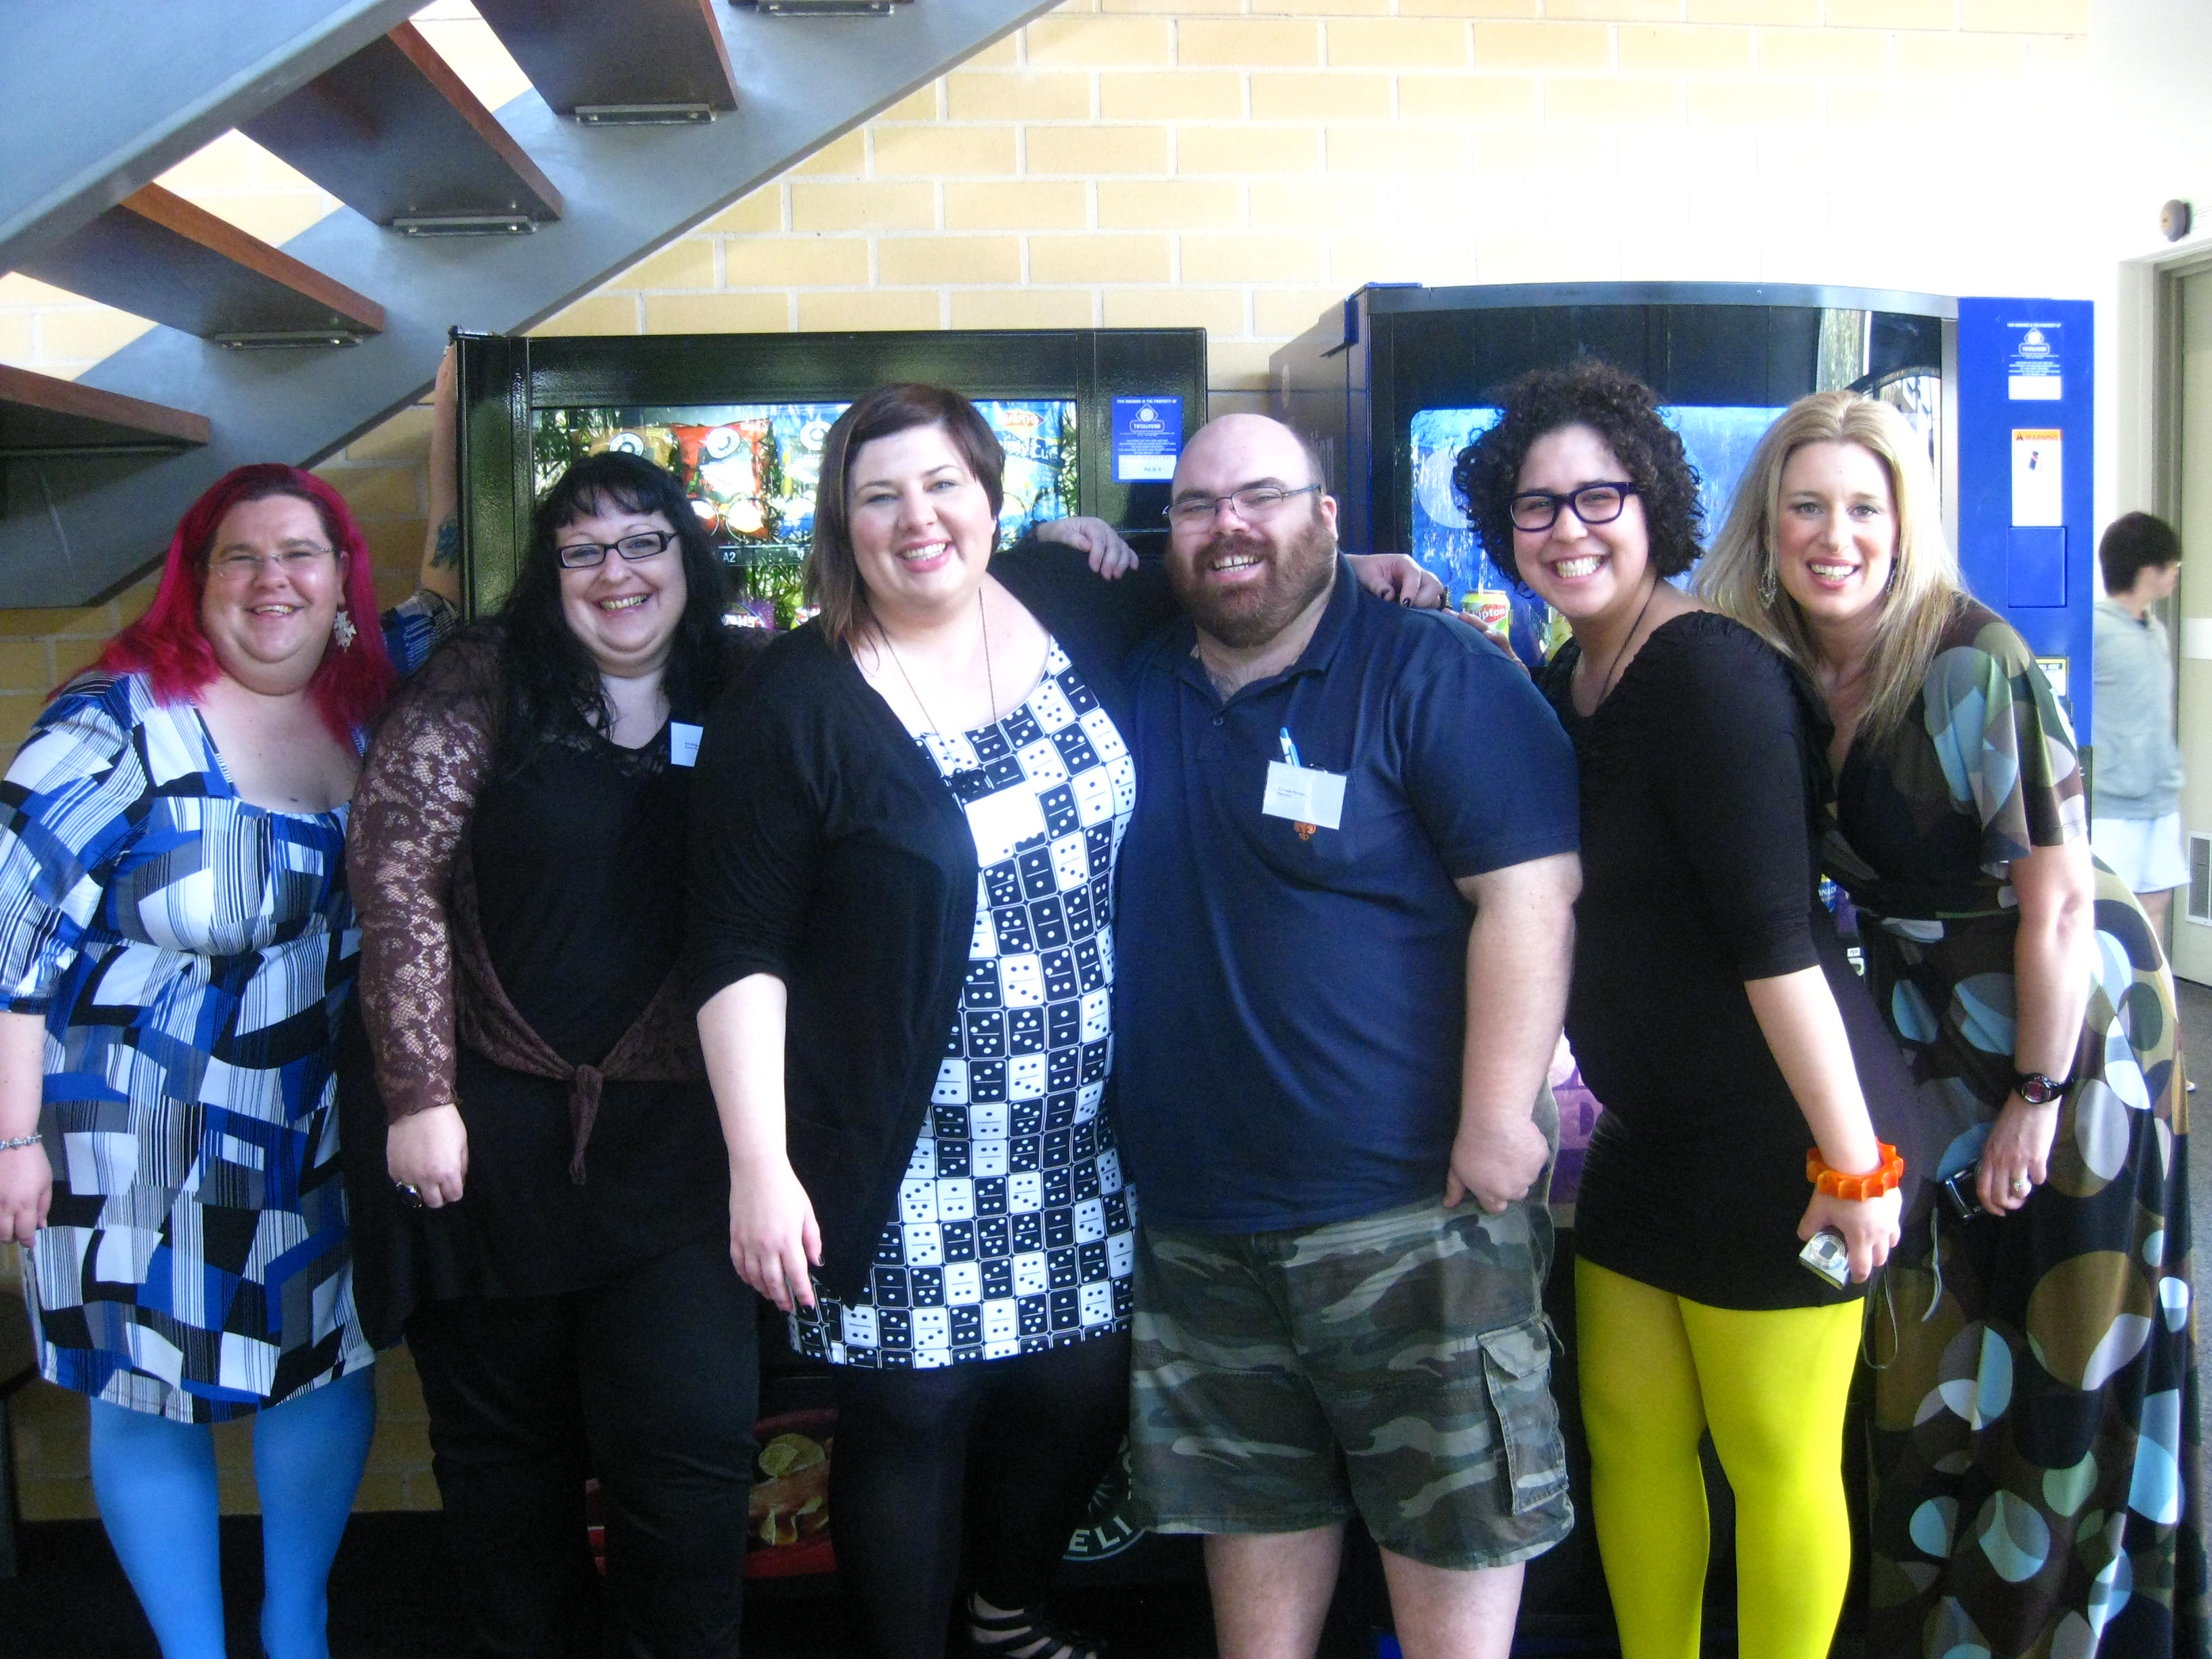 Reflections on and photos from the Fat Studies conference